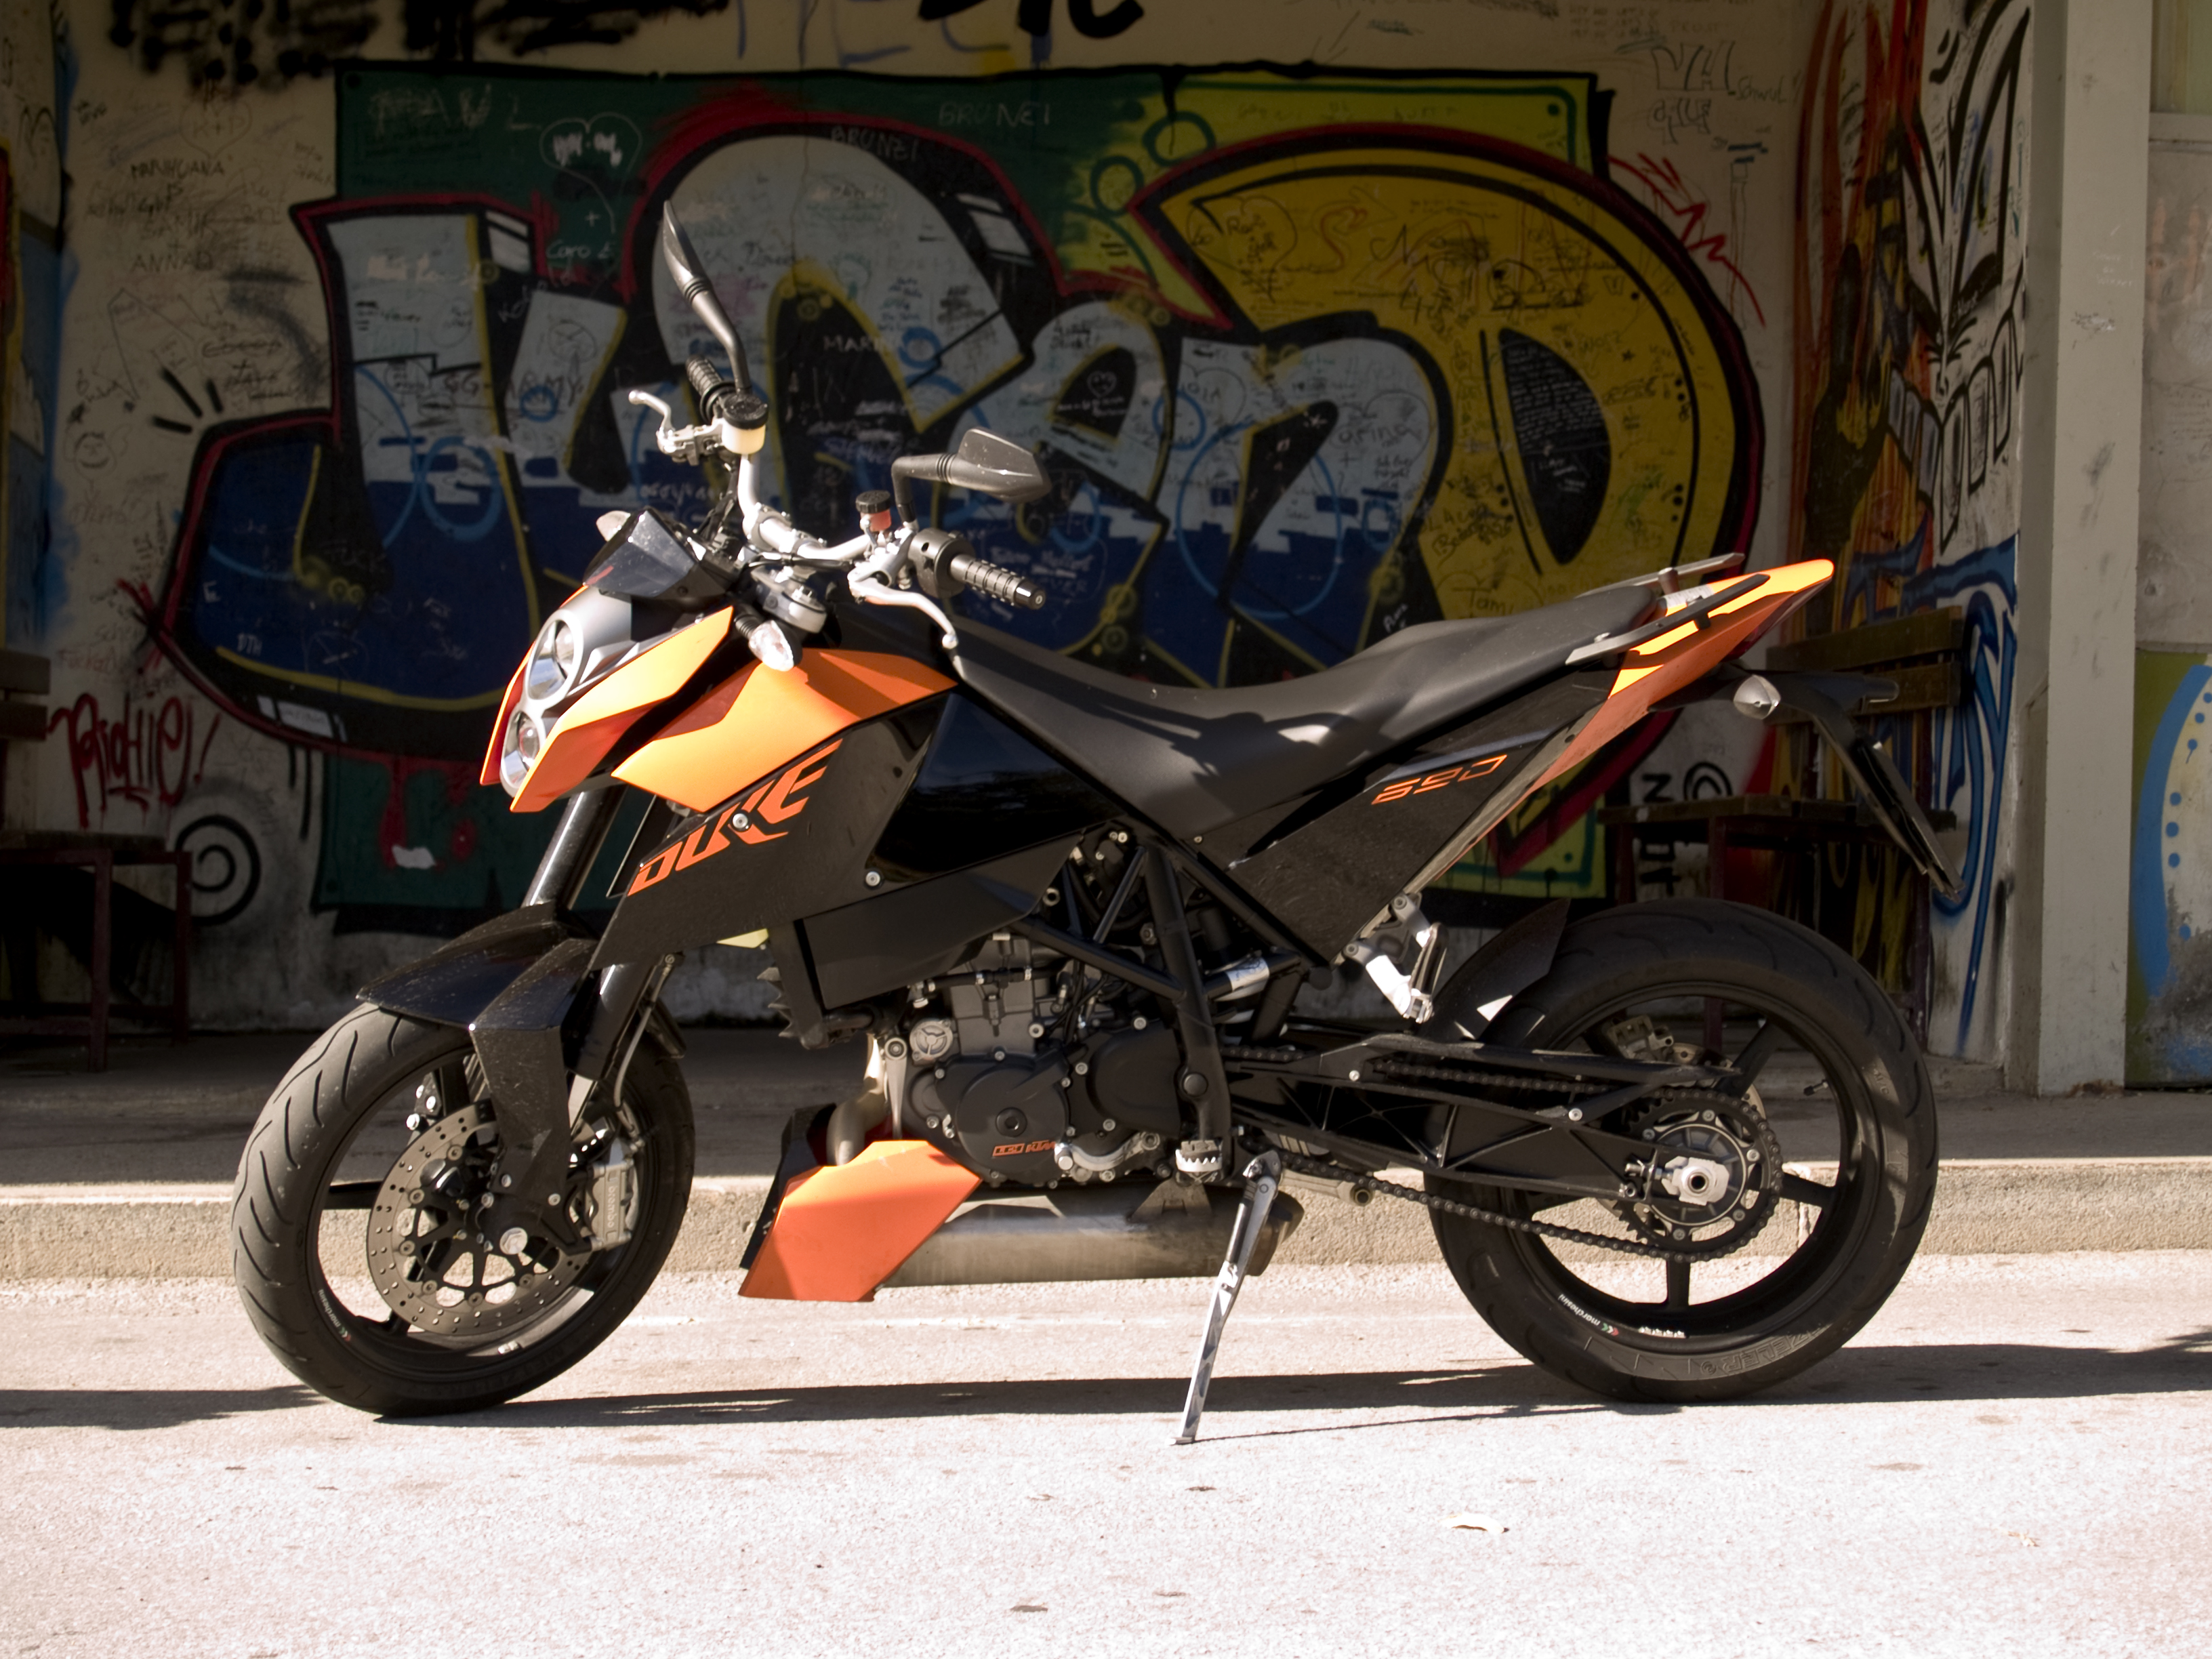 KTM 690 Supermoto Limited Edition 2010 images #155303